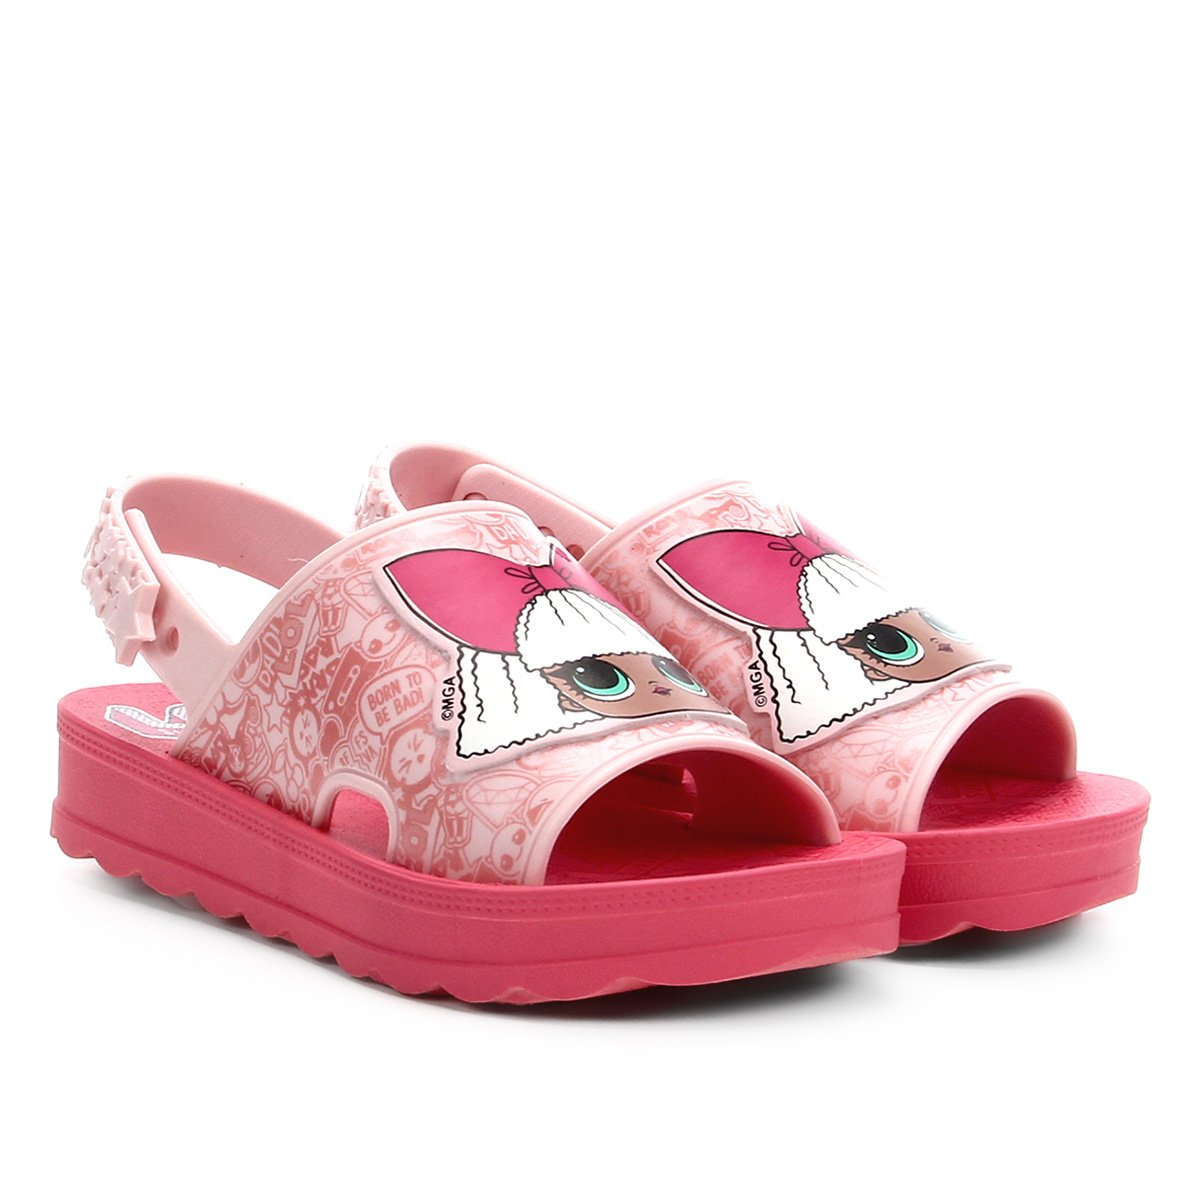 Sandália Infantil Grendene Kids Lol Hit Collection Flatform Feminina